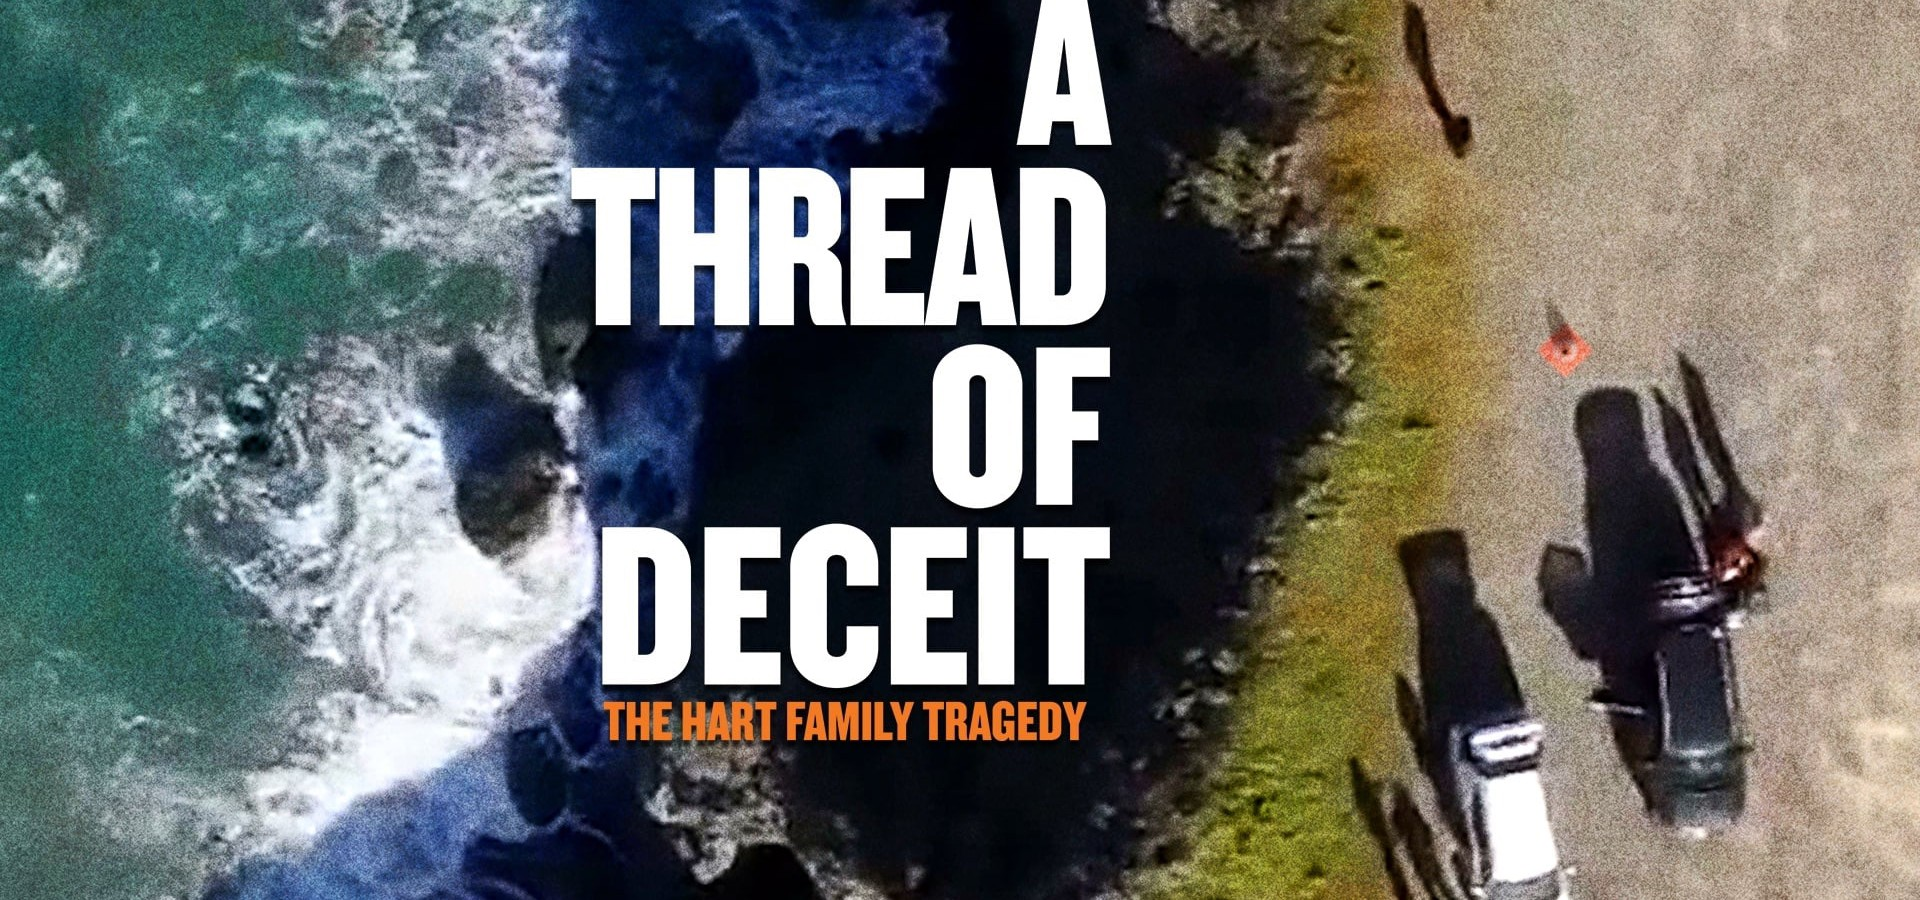 A Thread of Deceit: The Hart Family Tragedy